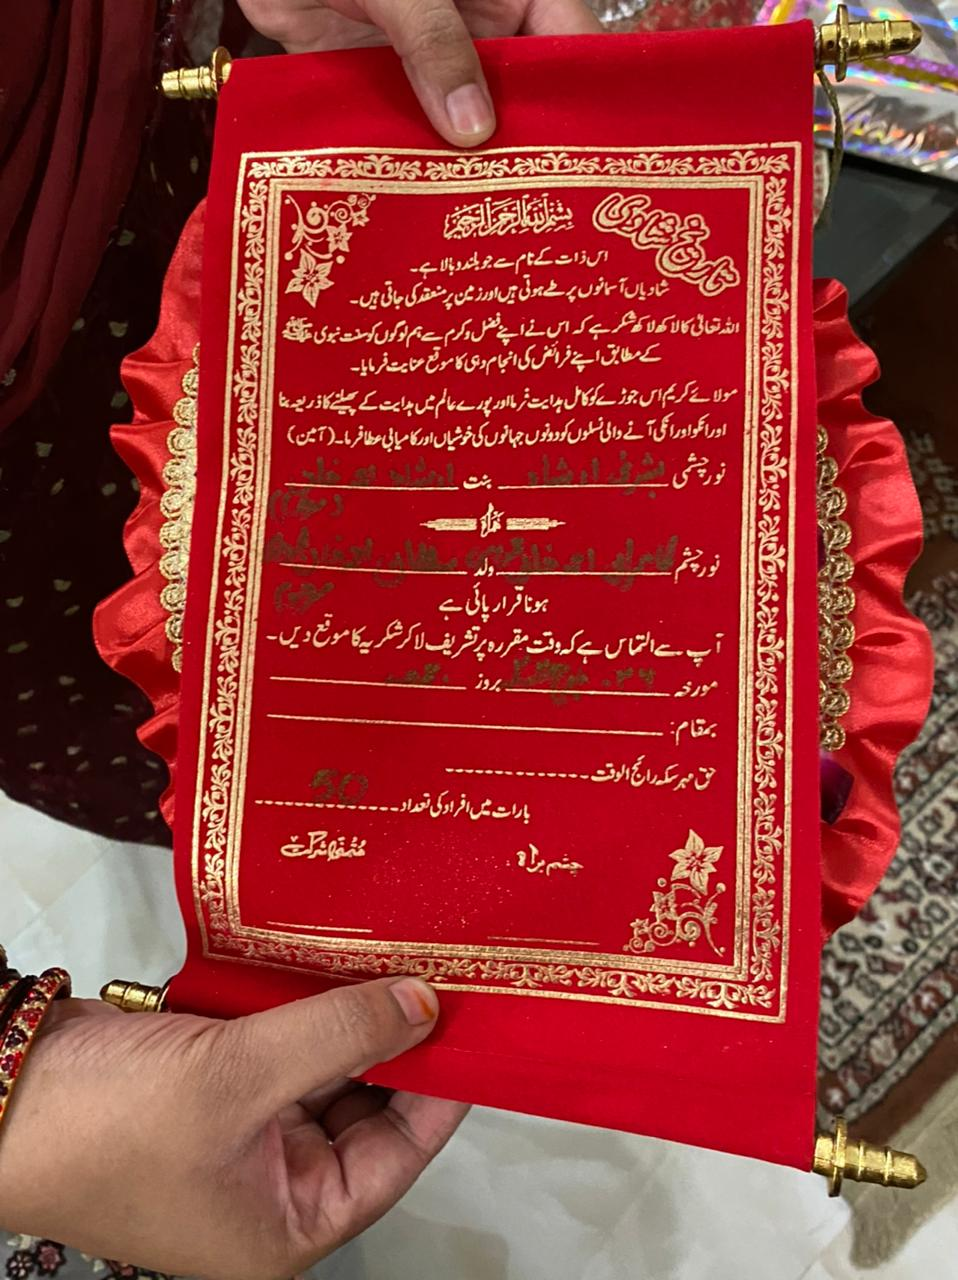 An open picture of Lal Khat